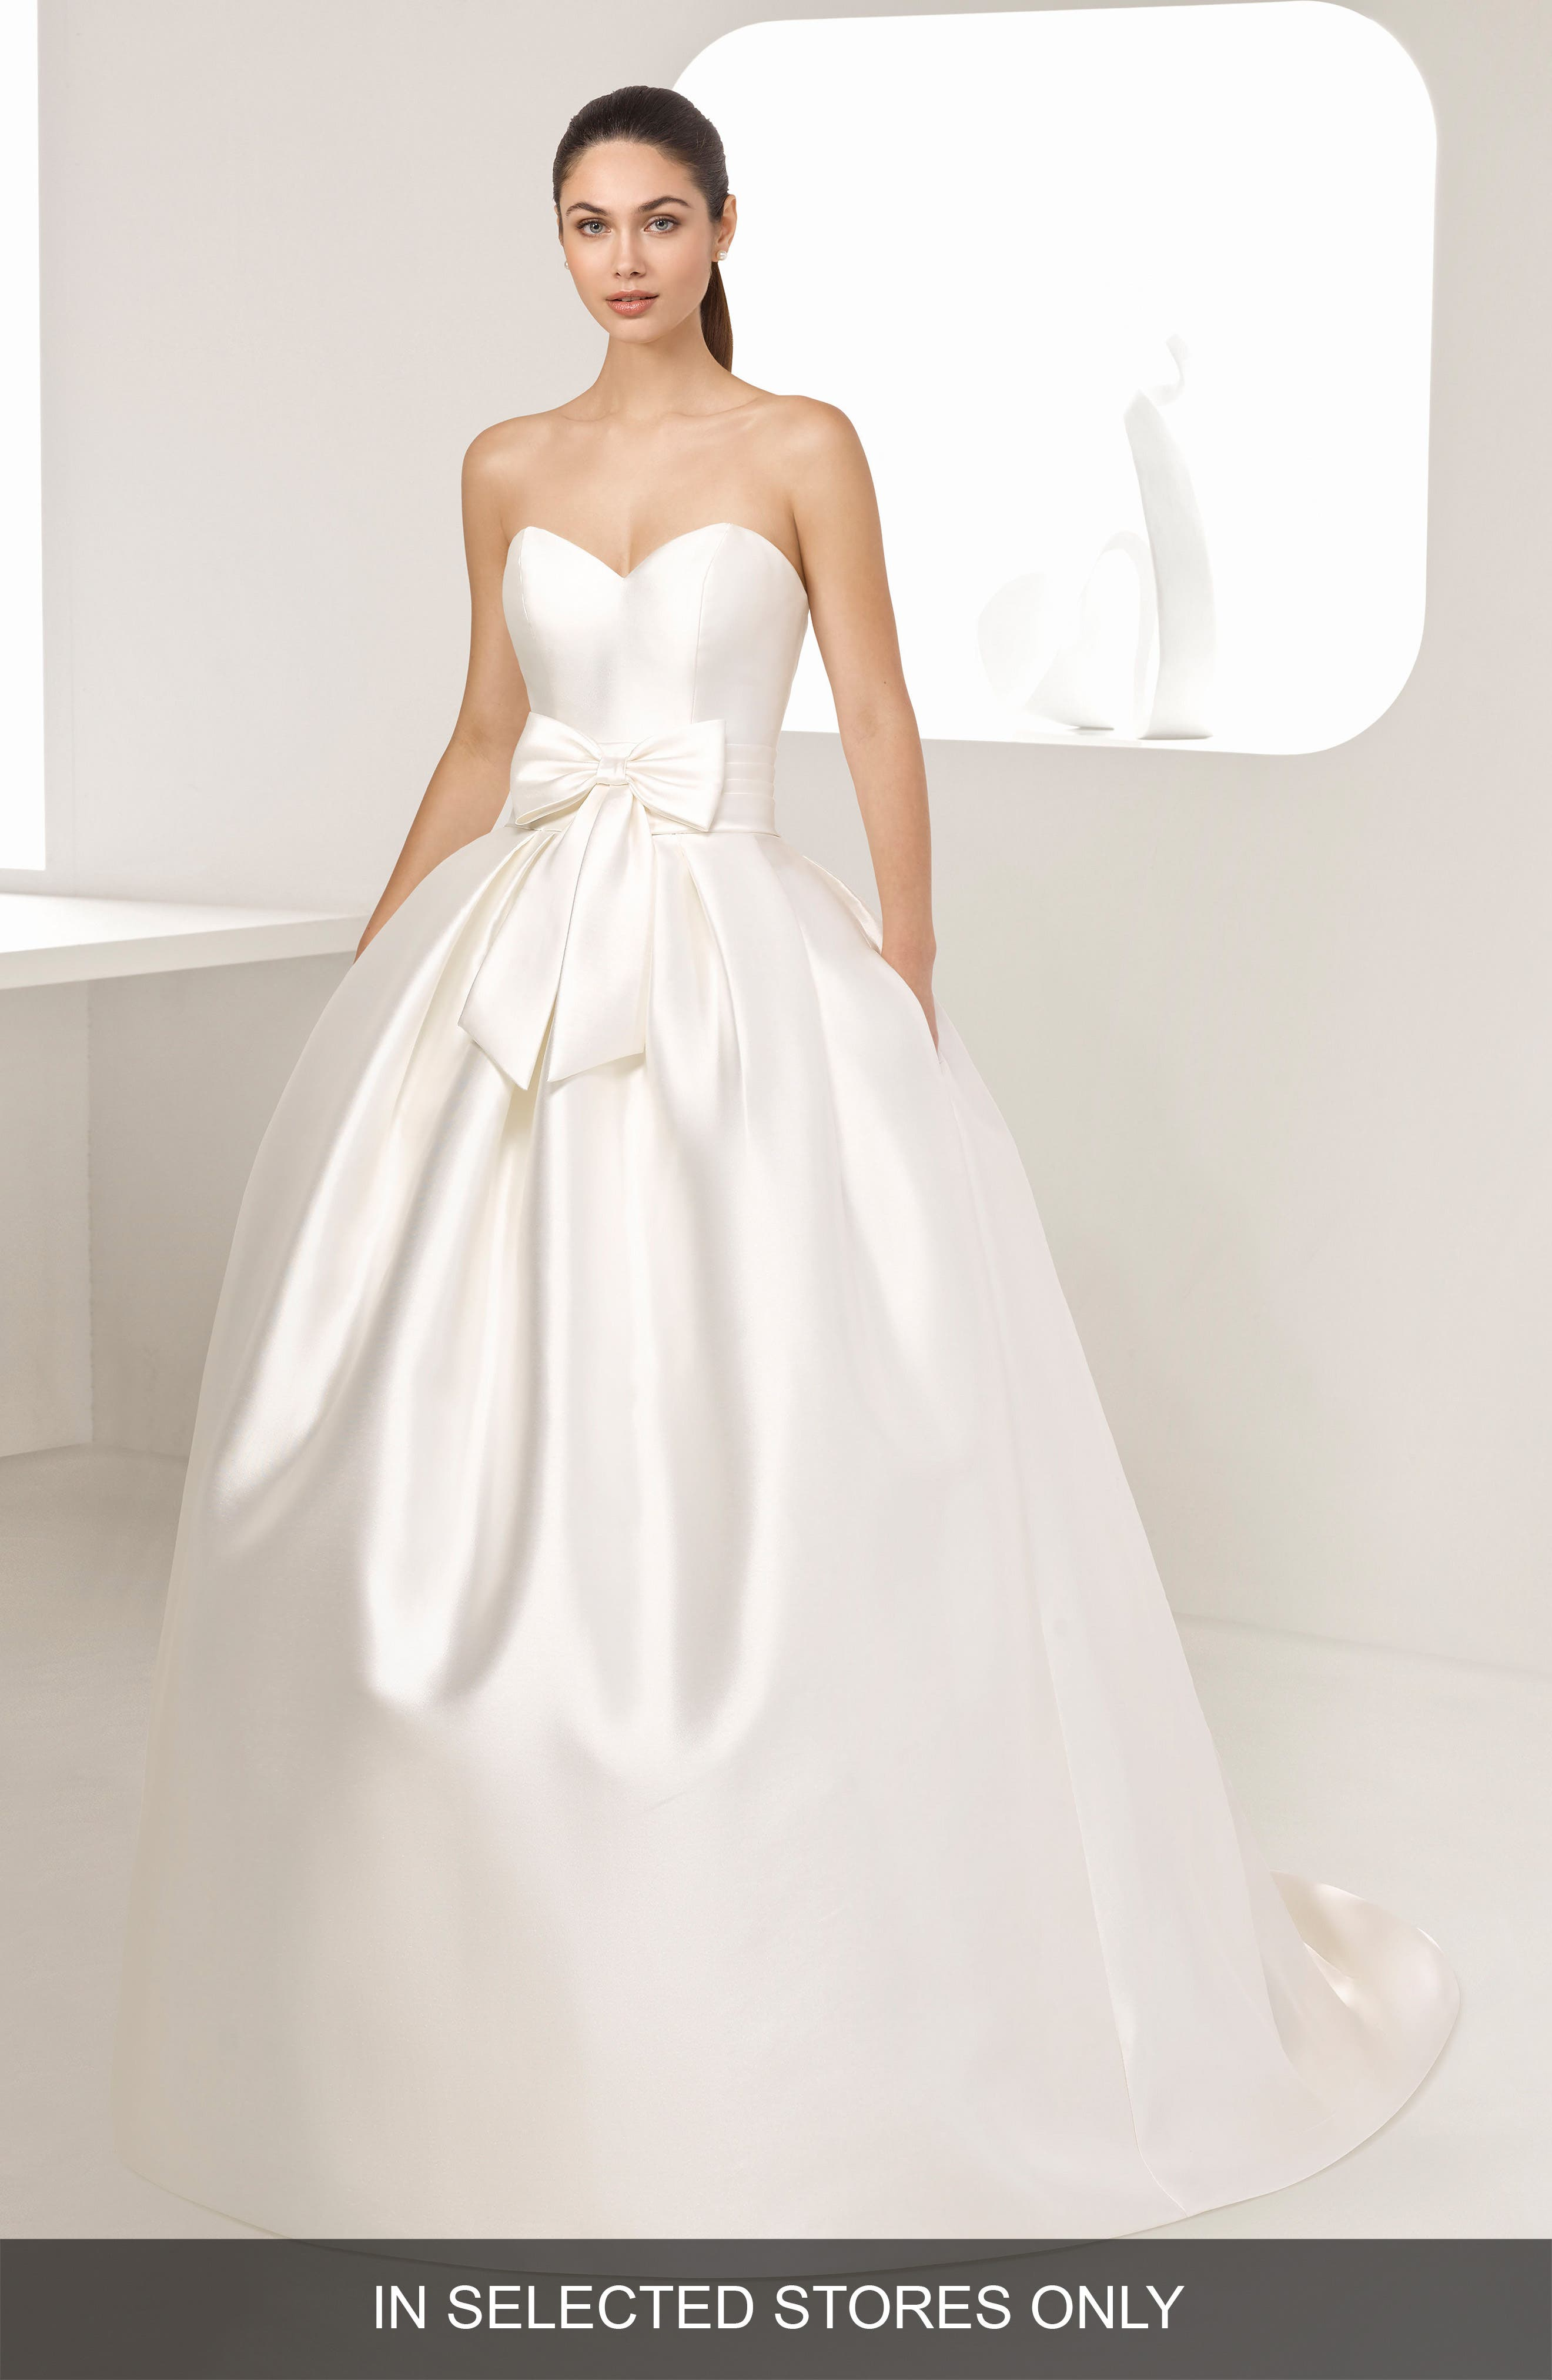 Main Image - Two by Rosa Clara Enebro Strapless Mikado Gown